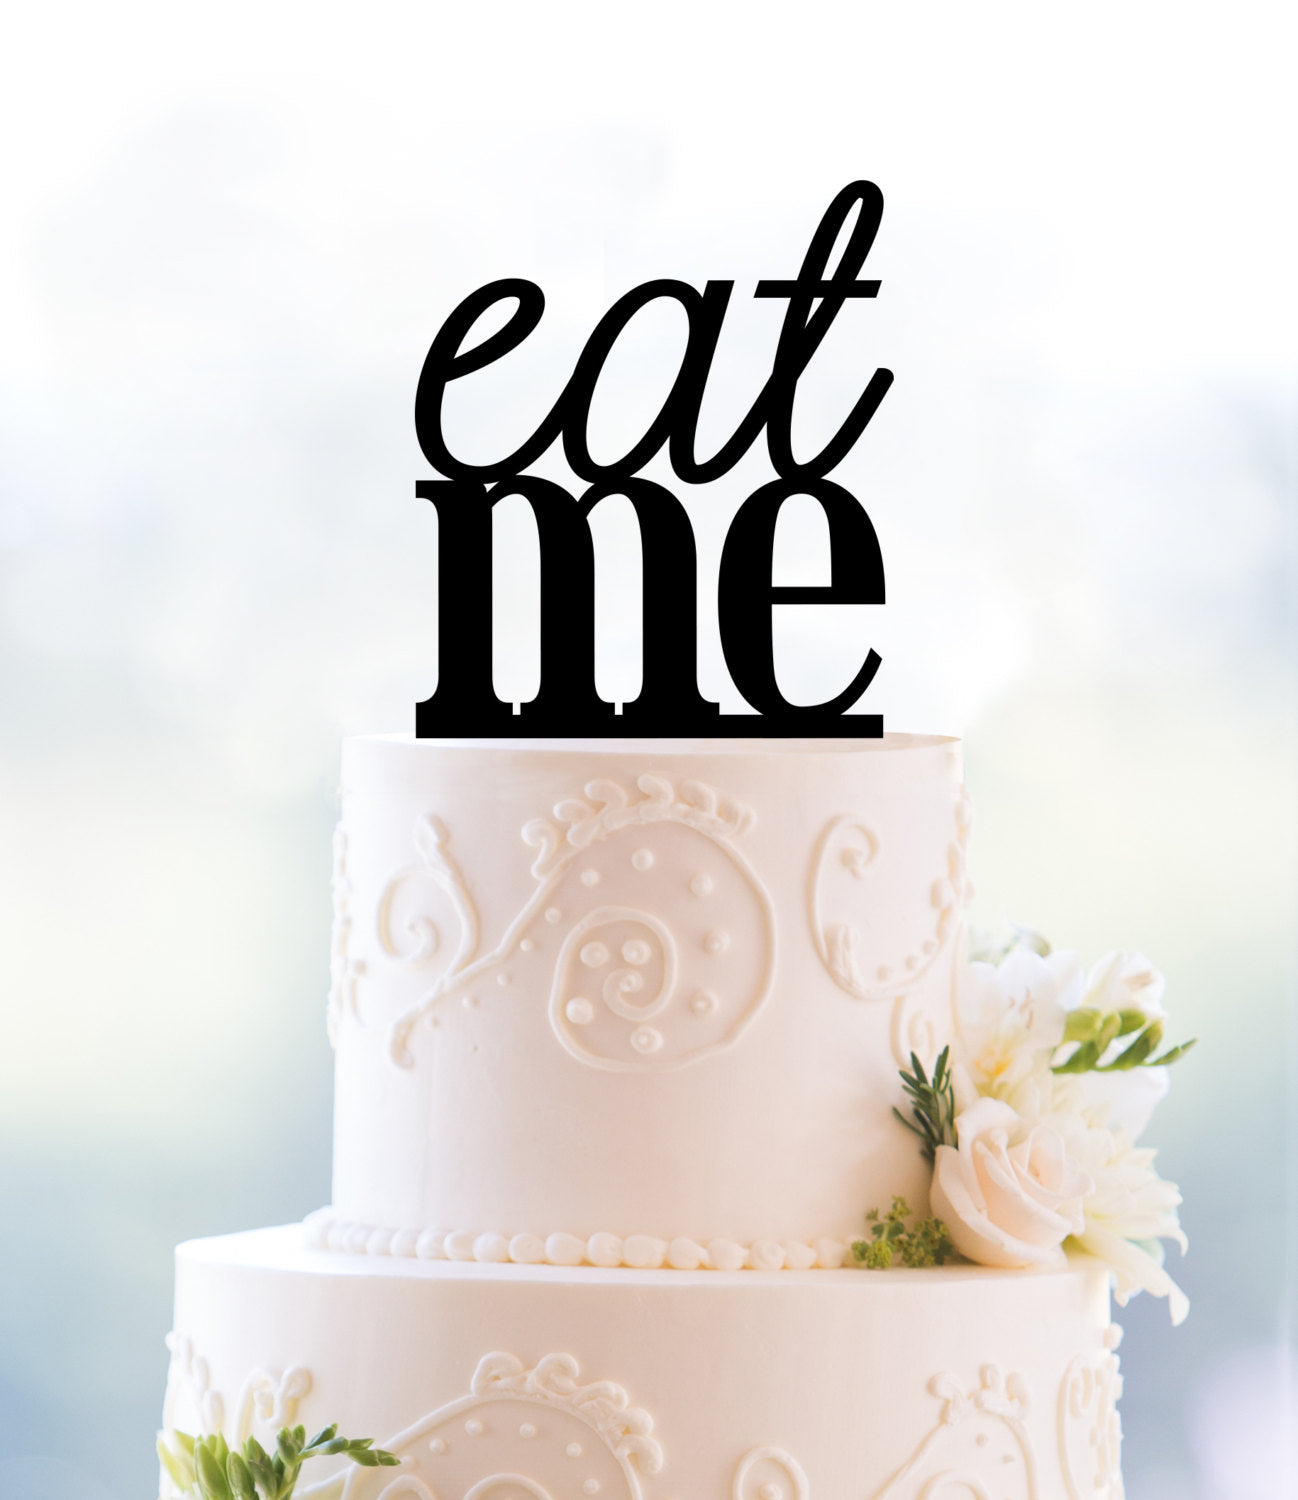 Funny Eat Me Cake Topper Funny Wedding Cake Topper Wedding Cake Table Decor Unique Cake Topper Wedding Cake Decorations T081